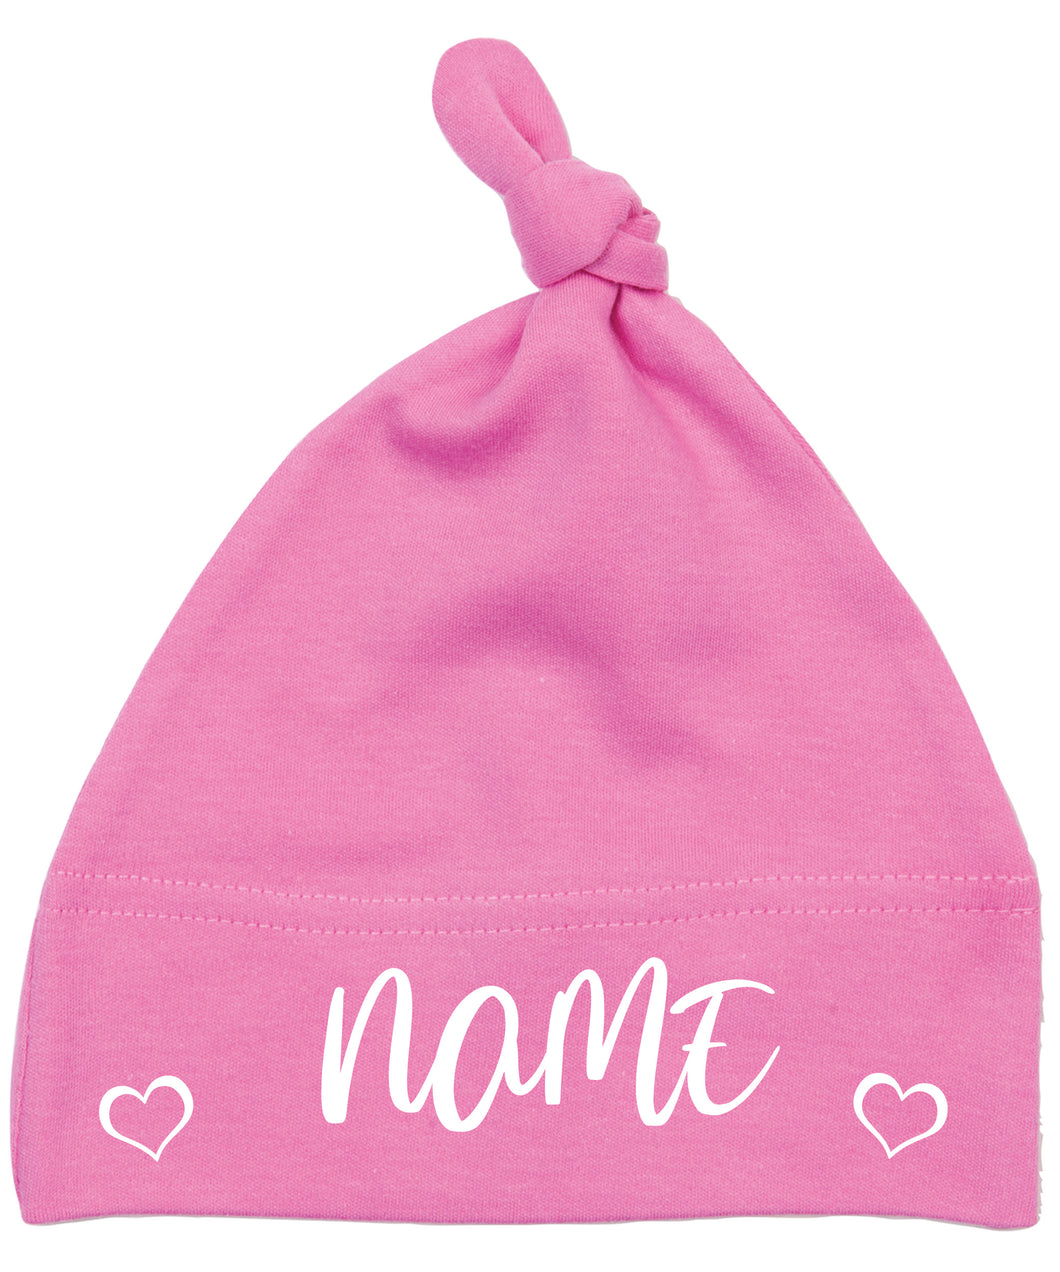 Personalised Baby Hat - Pink